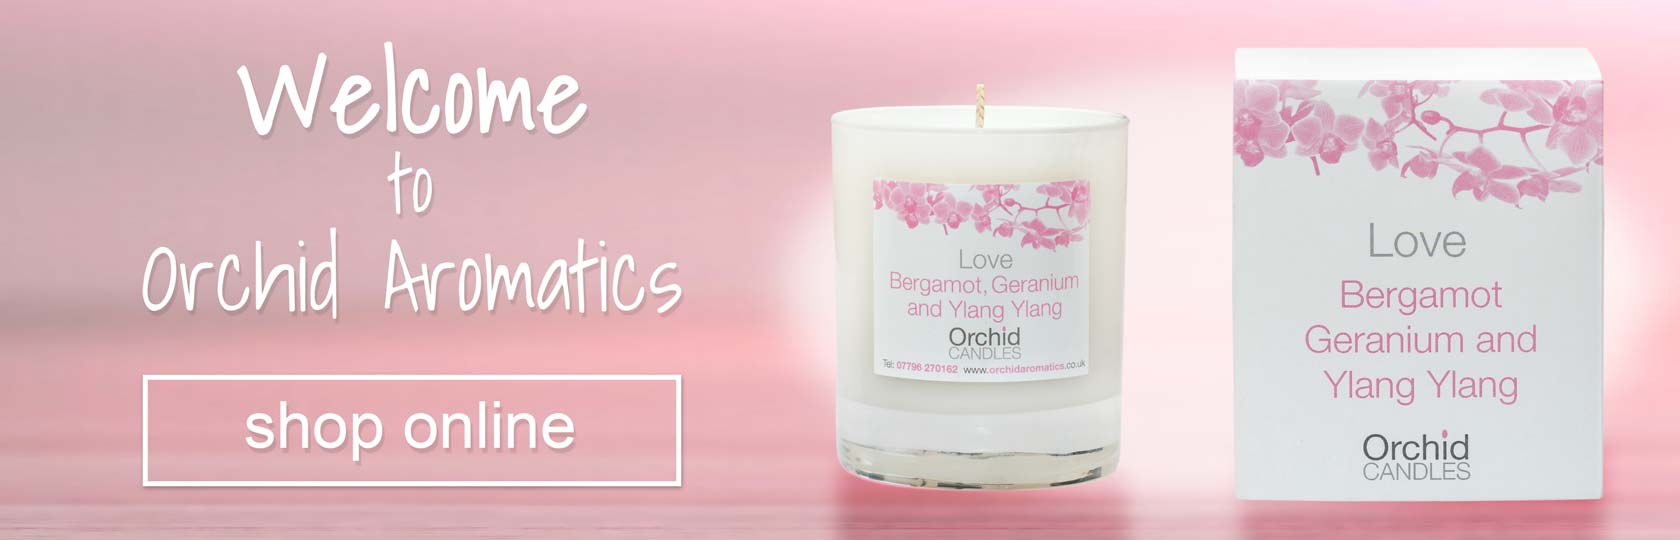 Love Bergamot geranium and Ylang